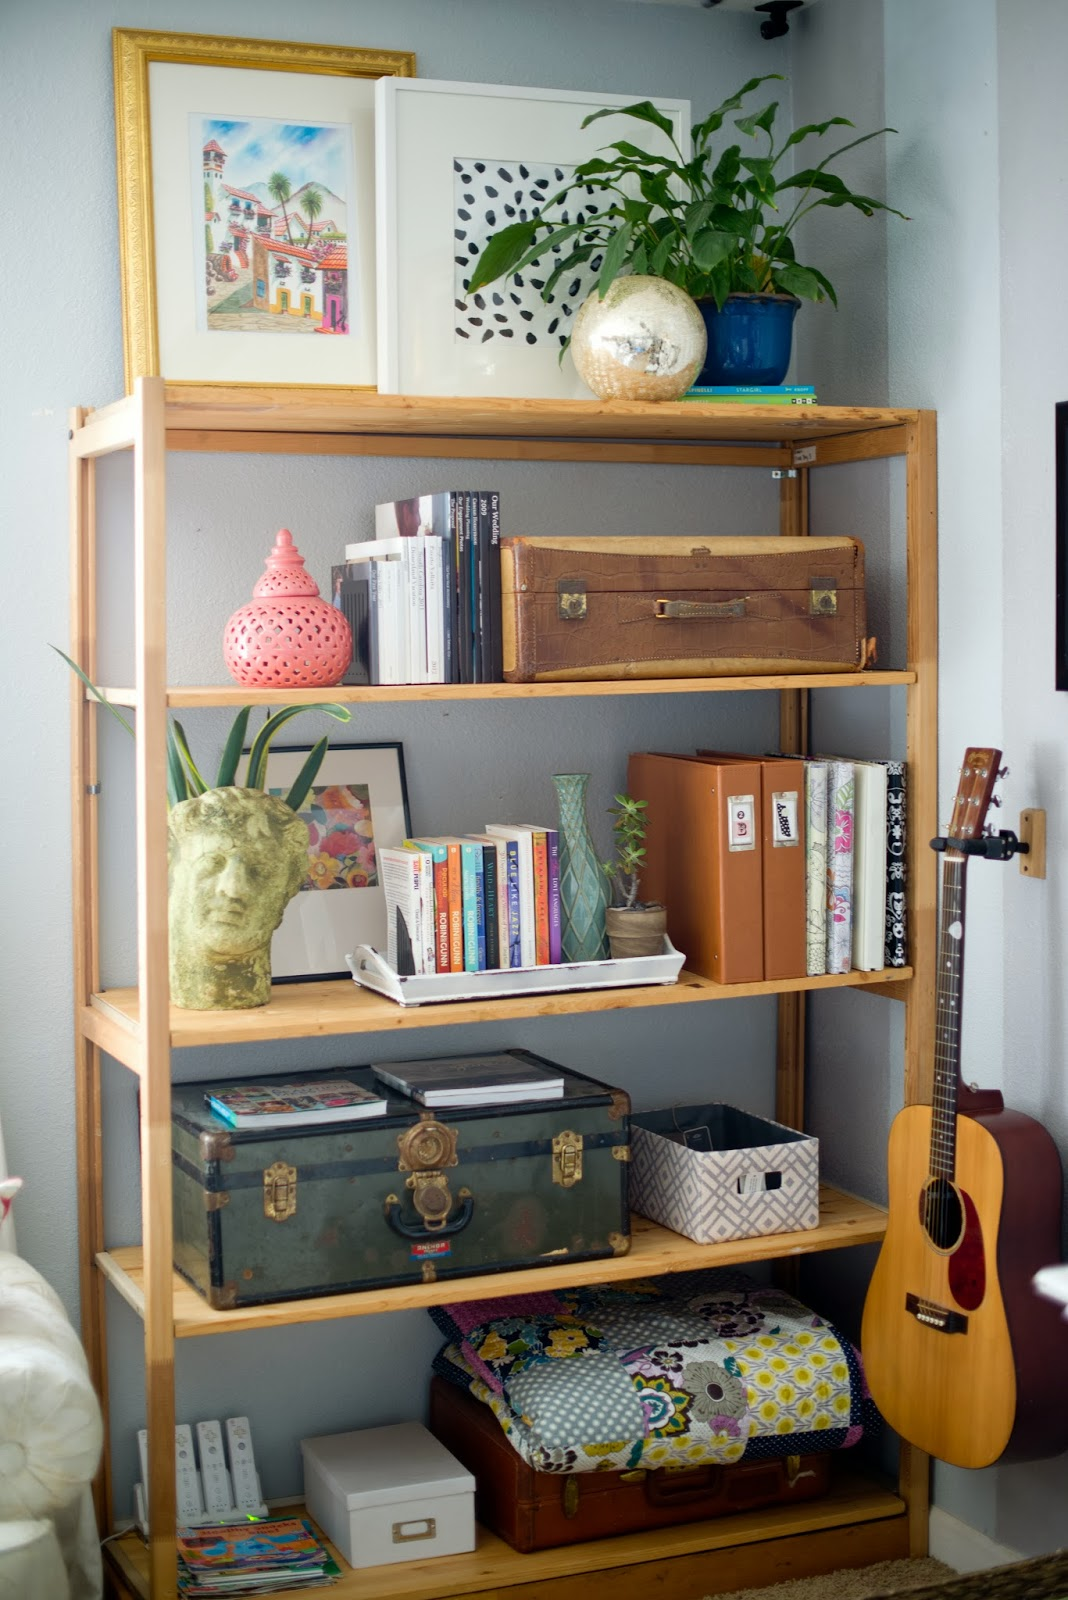 Domestic fashionista decorating around the tv and a new shelf Living room shelving ideas